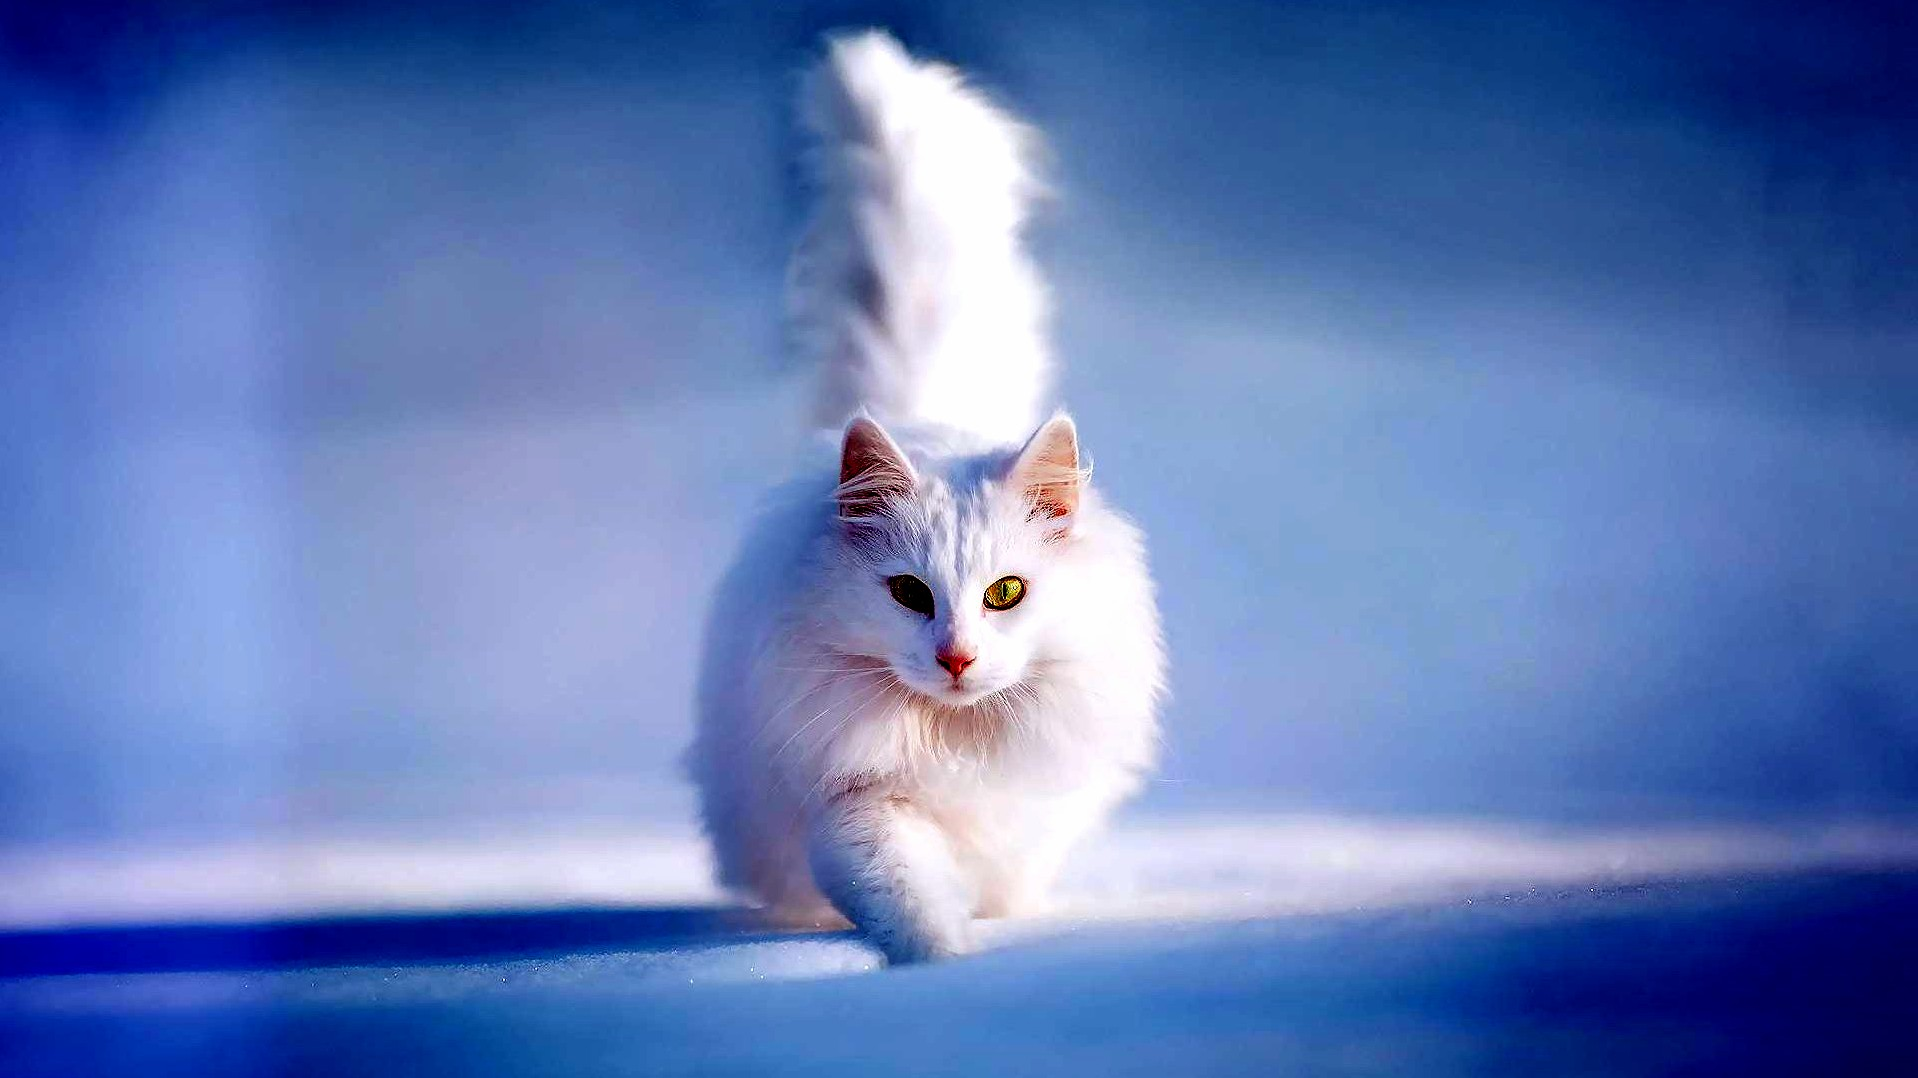 Beautiful White Cat Cute Cats Hq Pictures Of Cute Cats And Kittens Free Pictures Of Funny Cats And Photo Of Cute Kittens